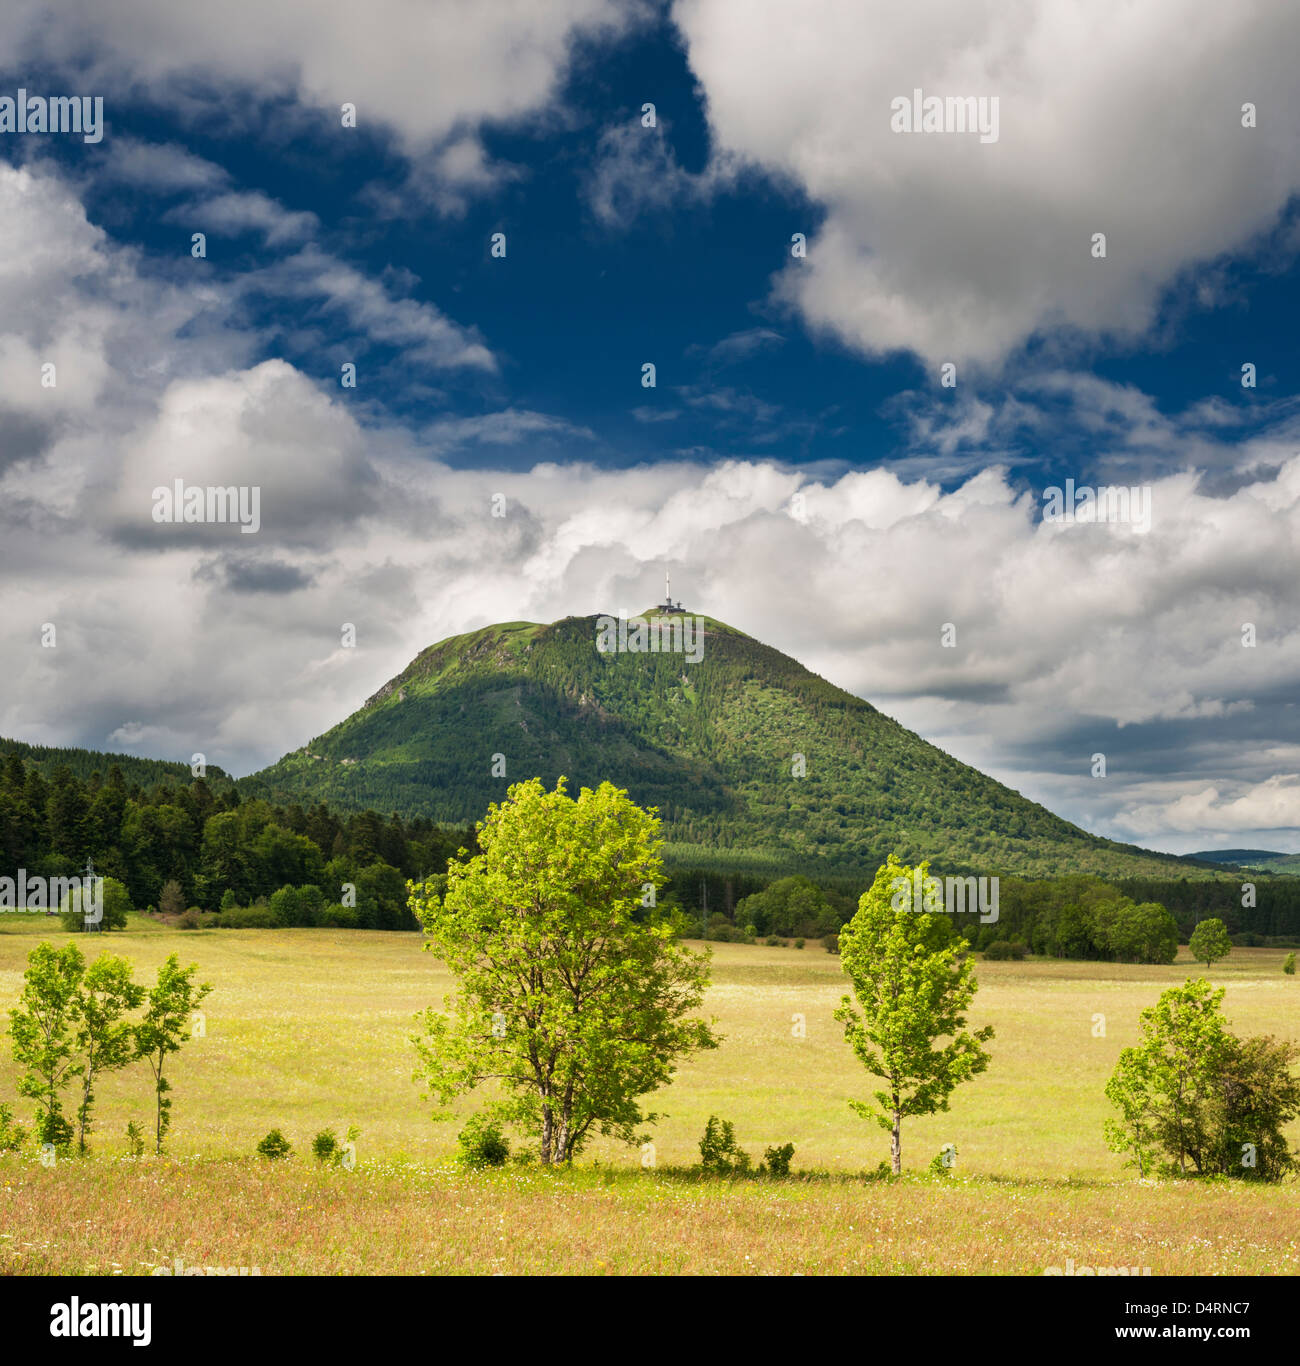 Puy-de-Dome Volcano from Laschamps, Auvergne, France - Stock Image